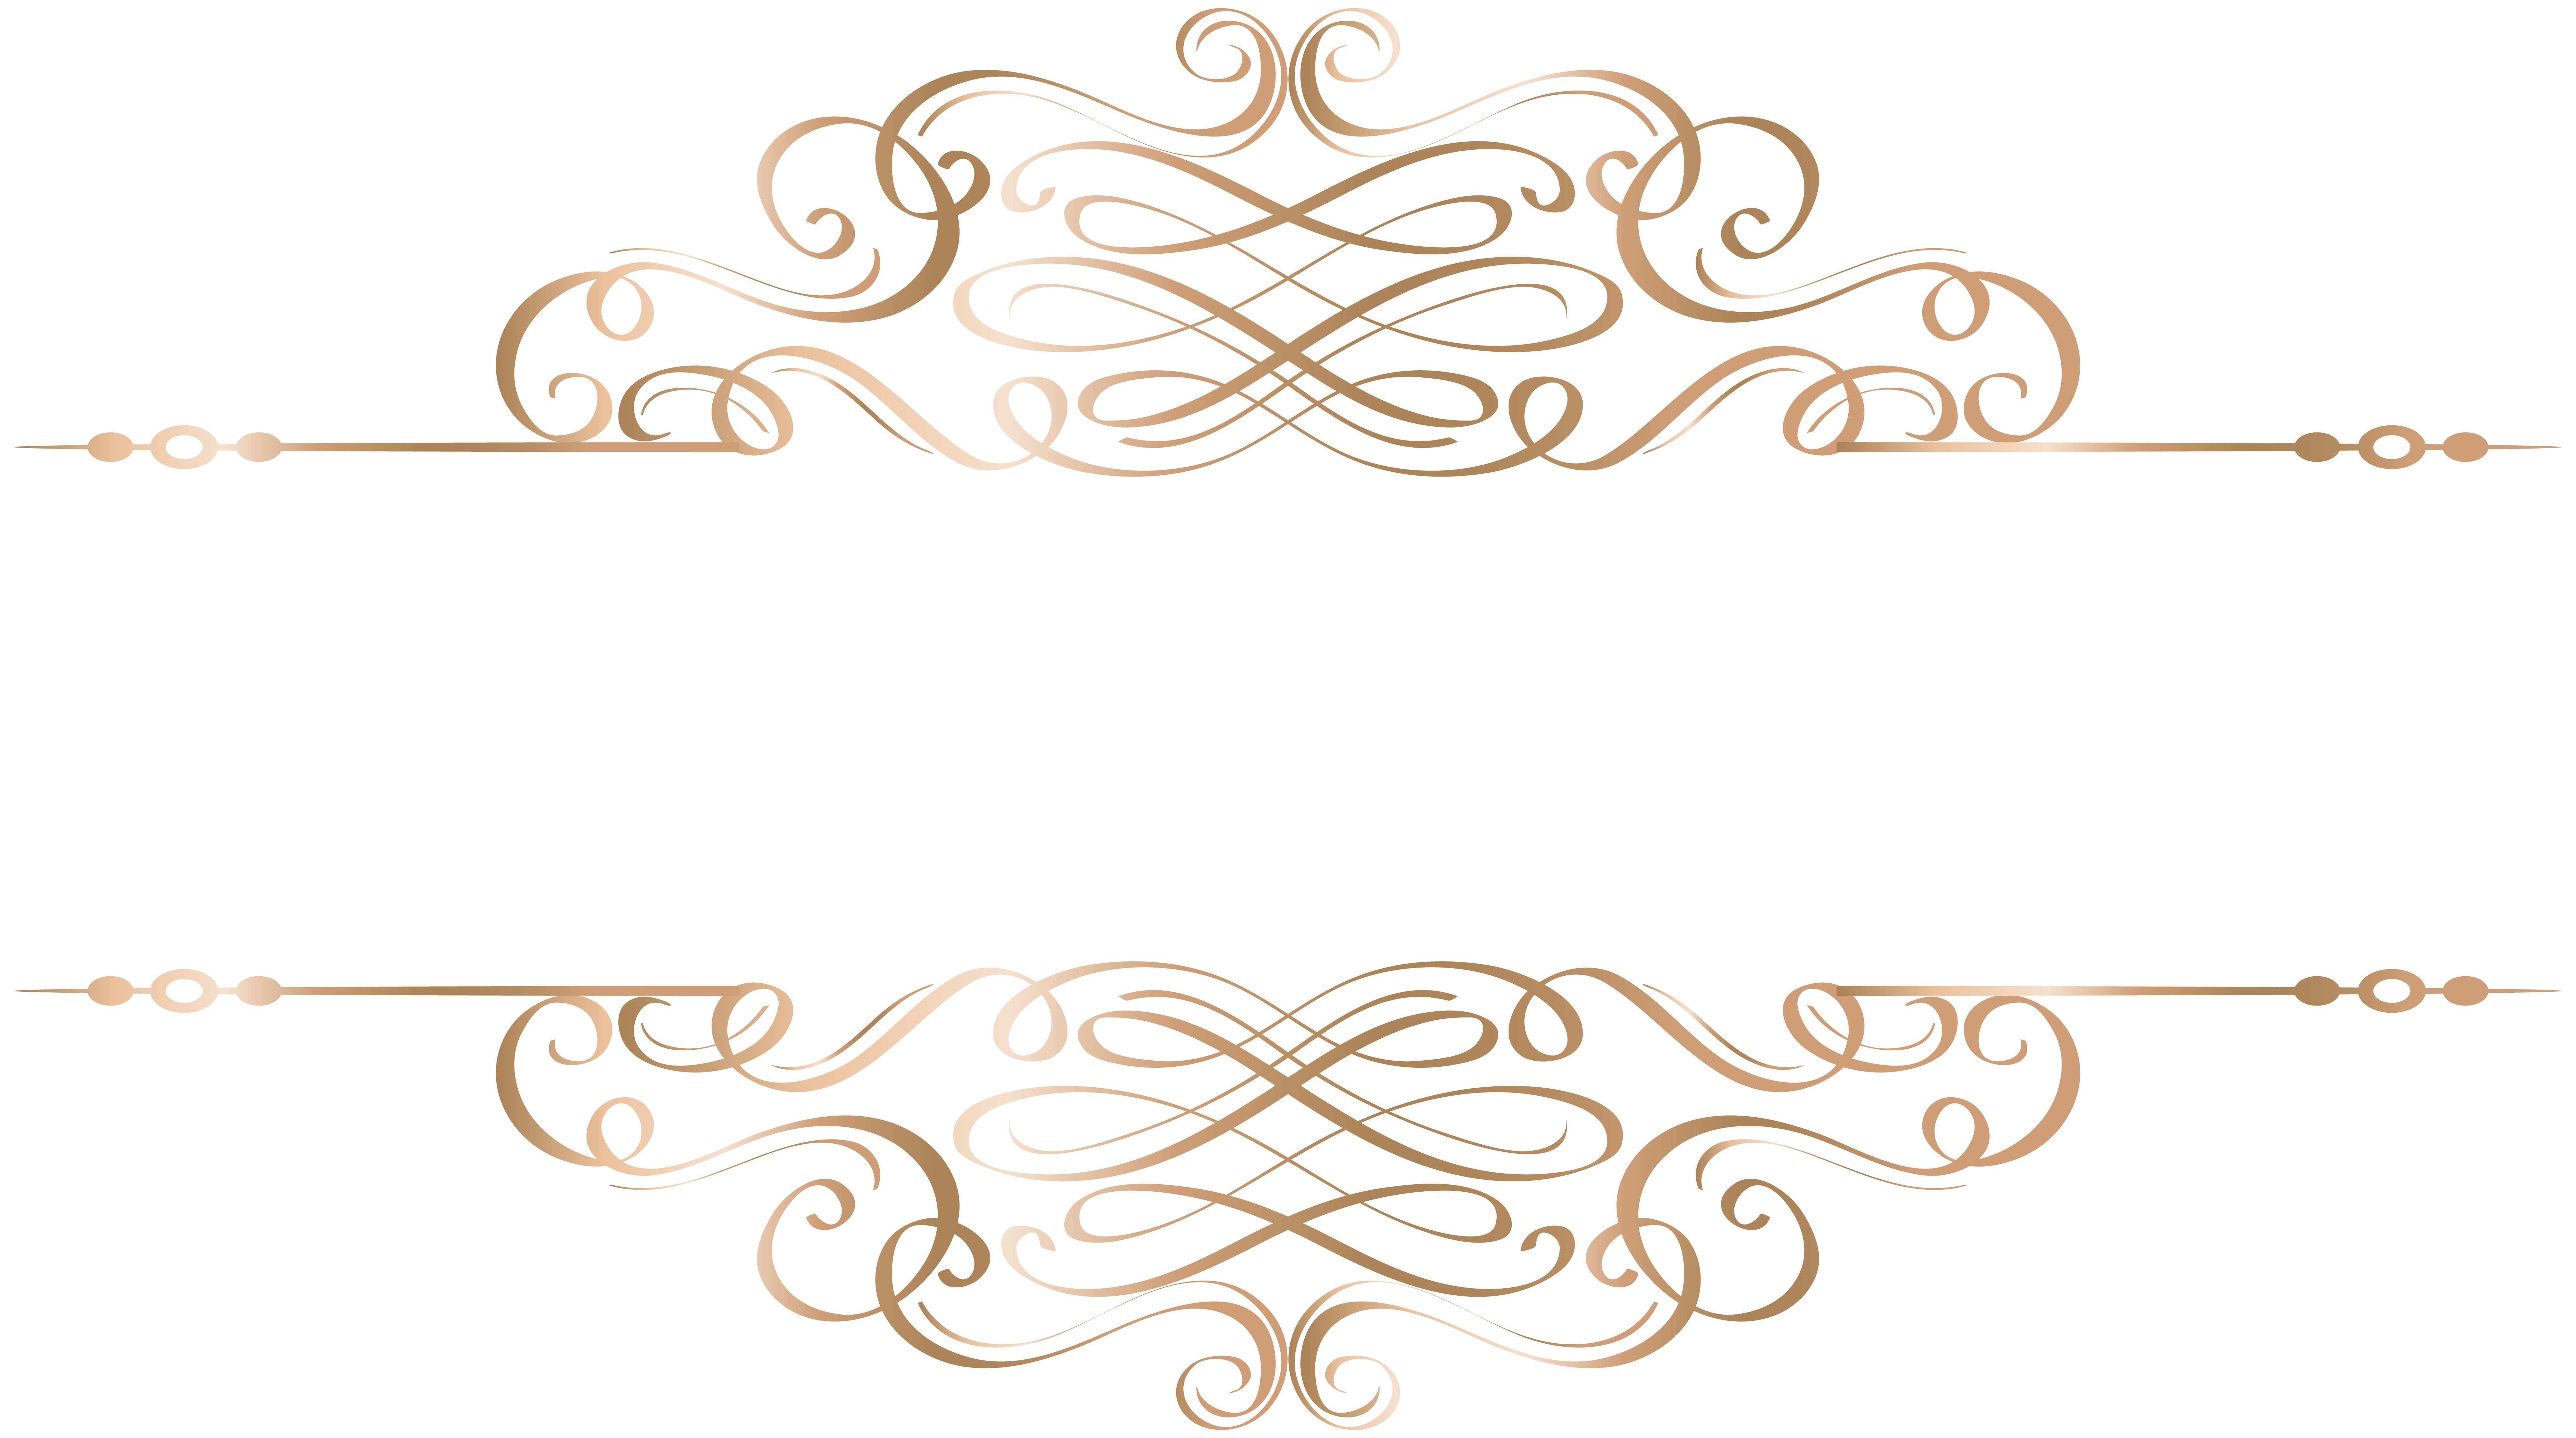 Gold Deco Element Png Clip Art Gallery Yopriceville High Quality Images And Transparent Png Free Clipart Clip Art Free Clip Art Art